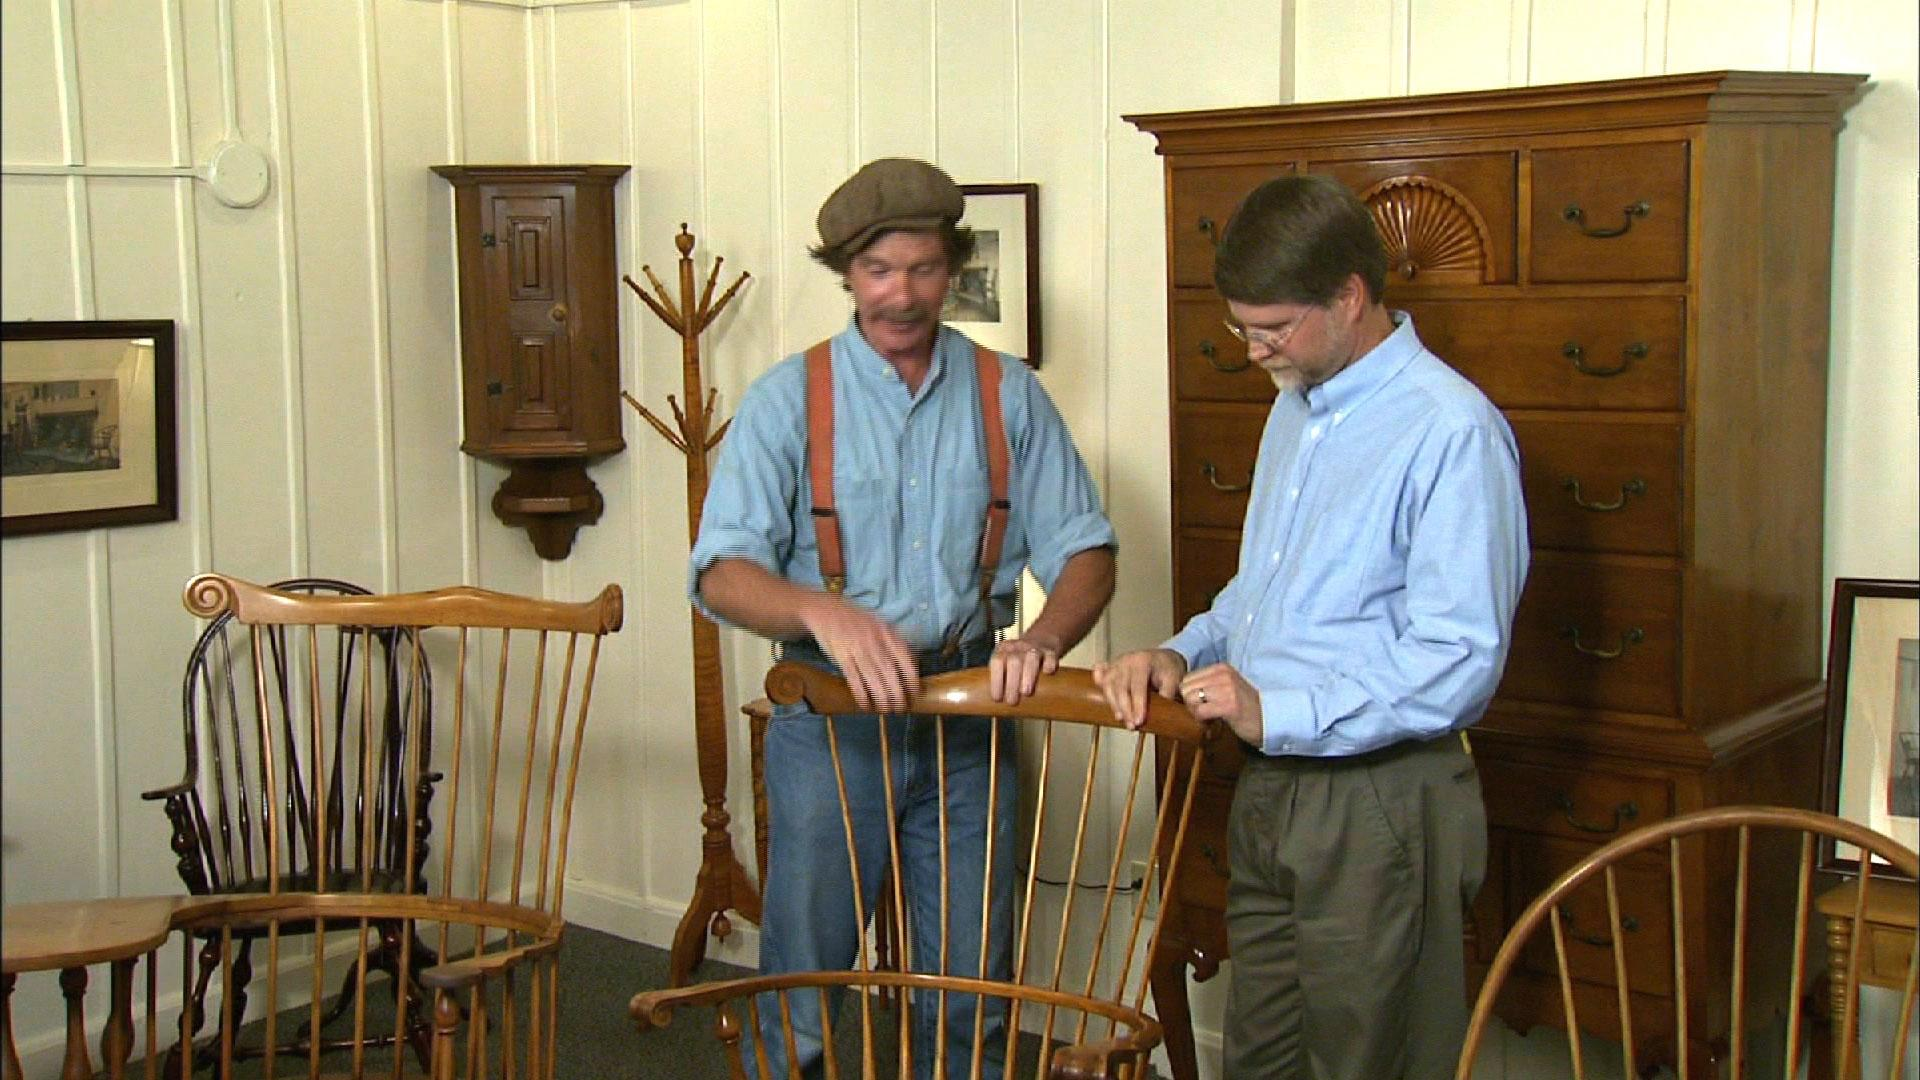 Video: S28 Ep13: Woodworking in Berea | Watch The Woodwright's Shop ...